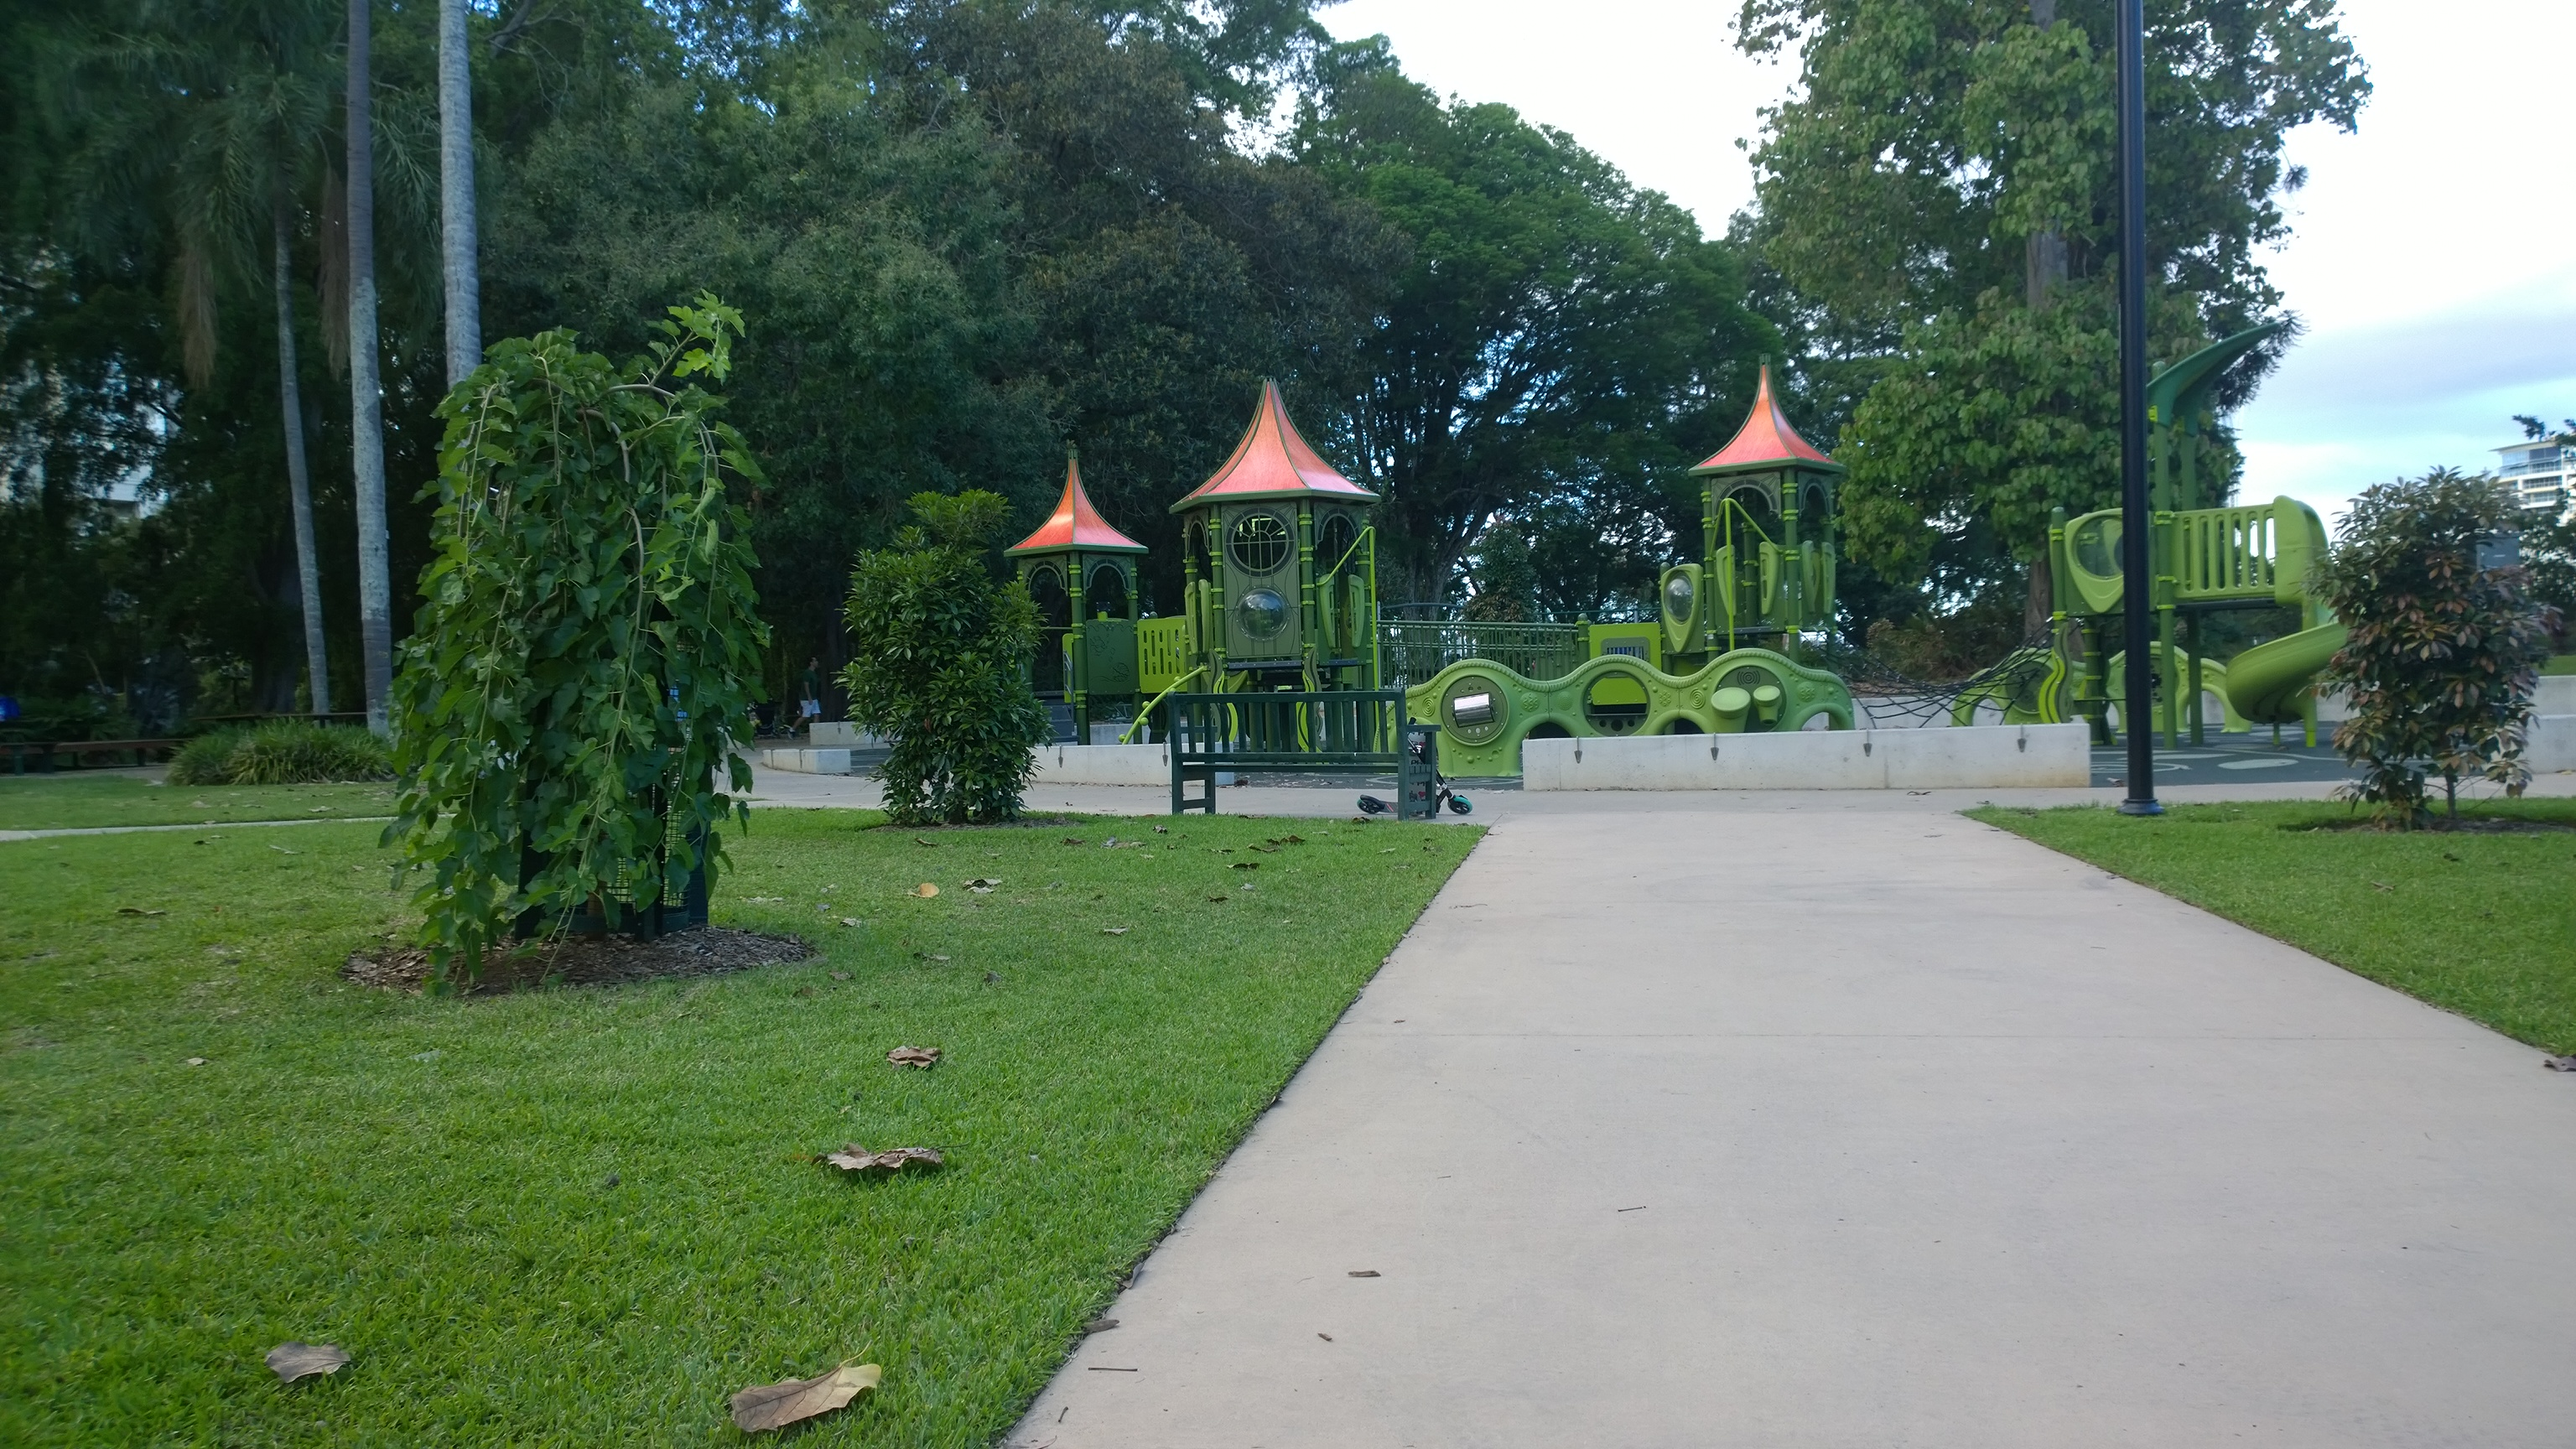 playground, role models, kids, activity, fun, learning